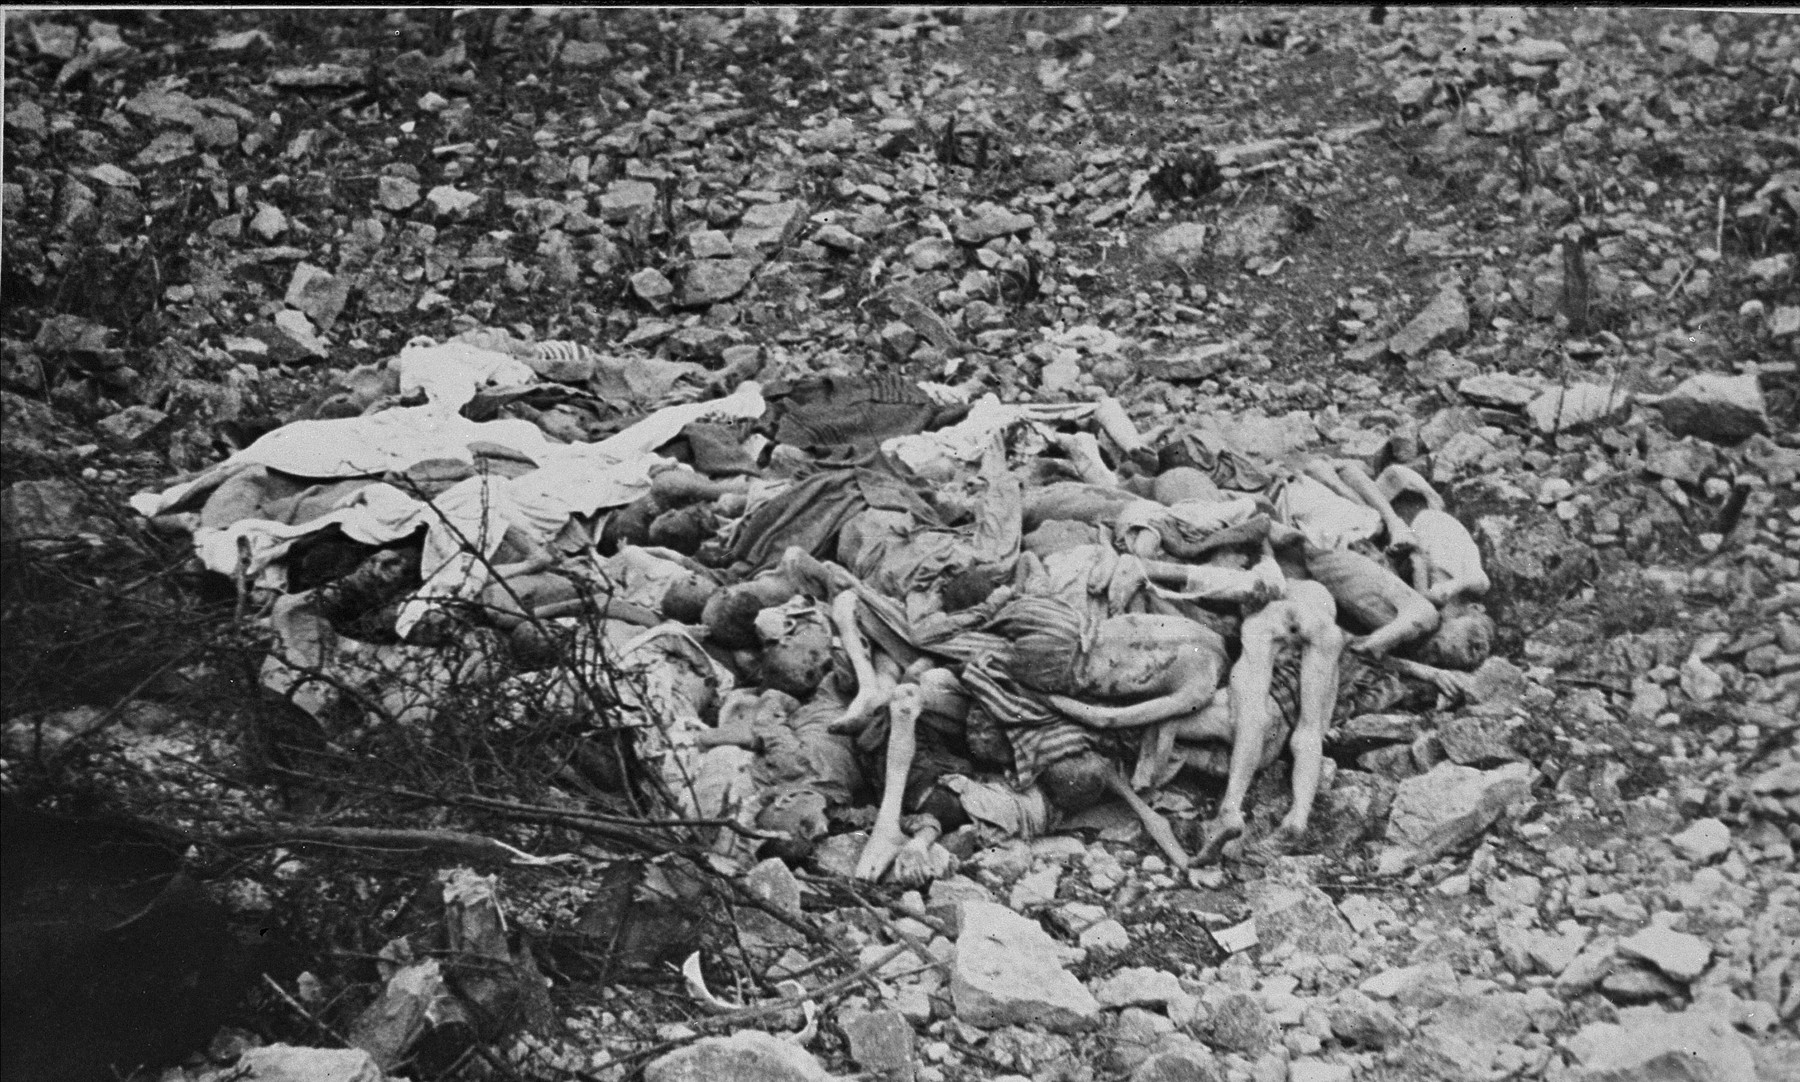 Corpses found at the bottom of a large depression in Buchenwald.